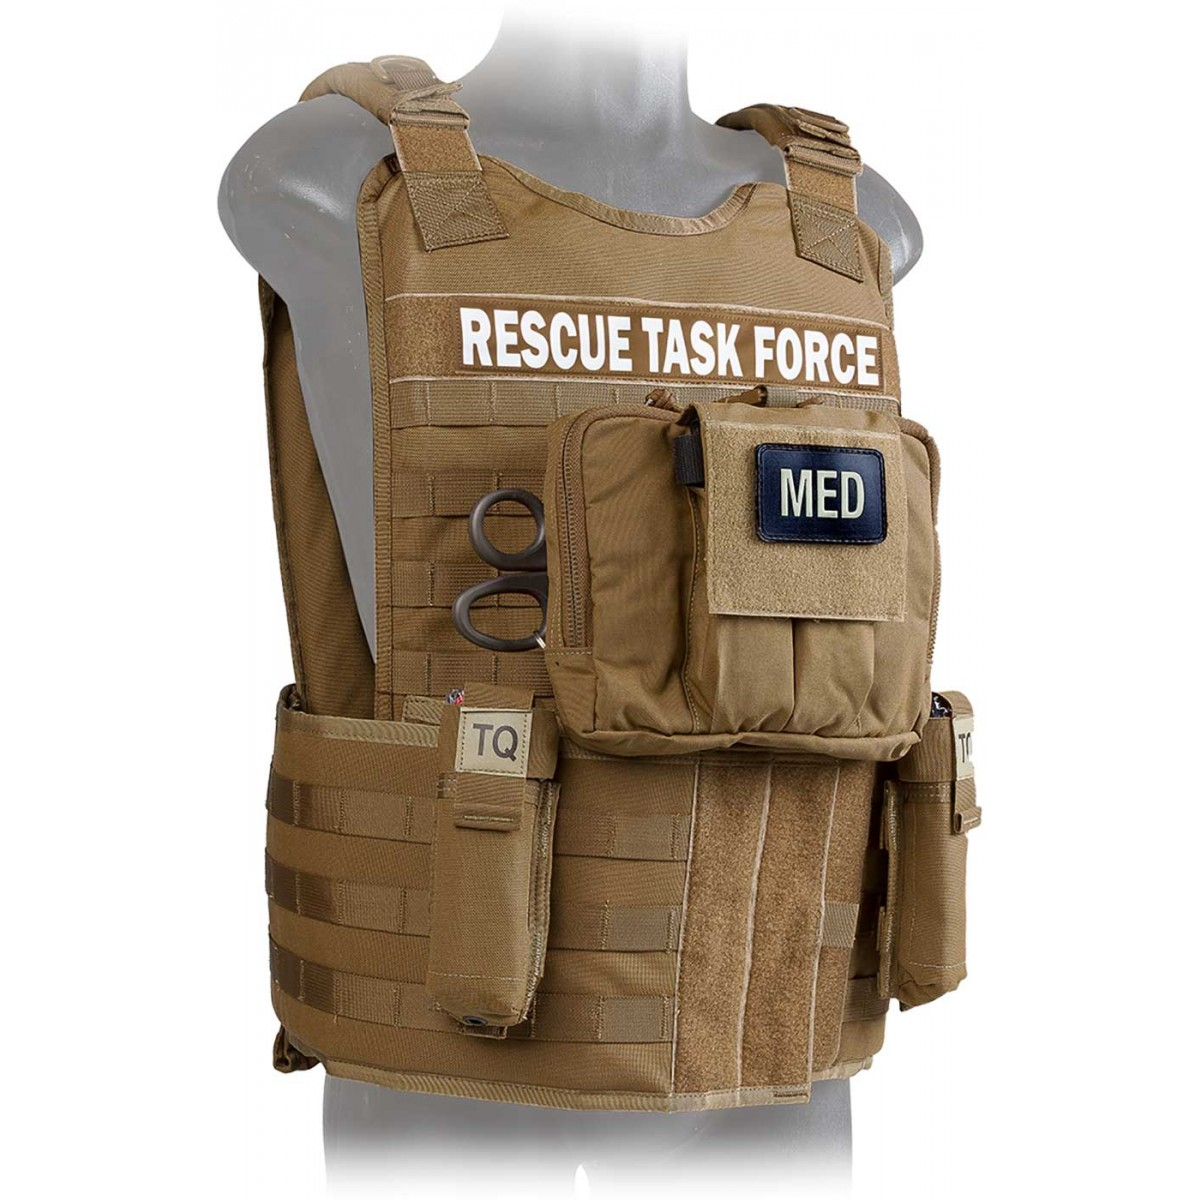 Rescue Task Force Vest Kit With Side Armor